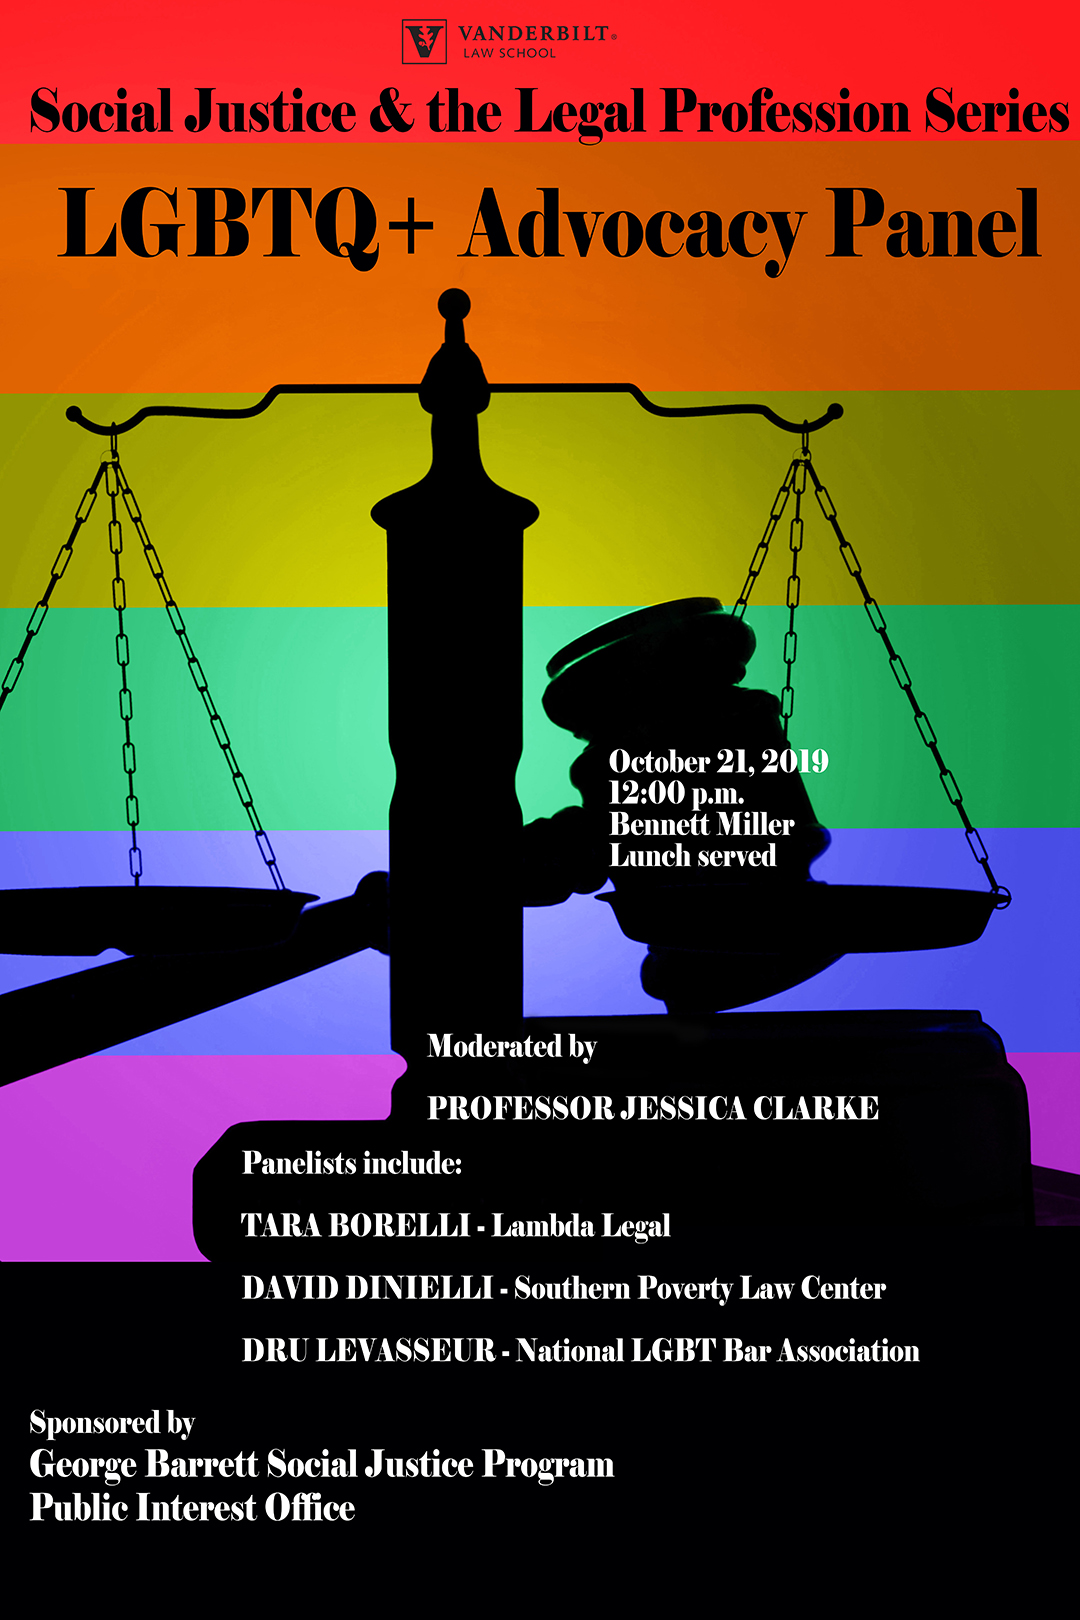 LGBTQ+ Advocacy Panel poster image